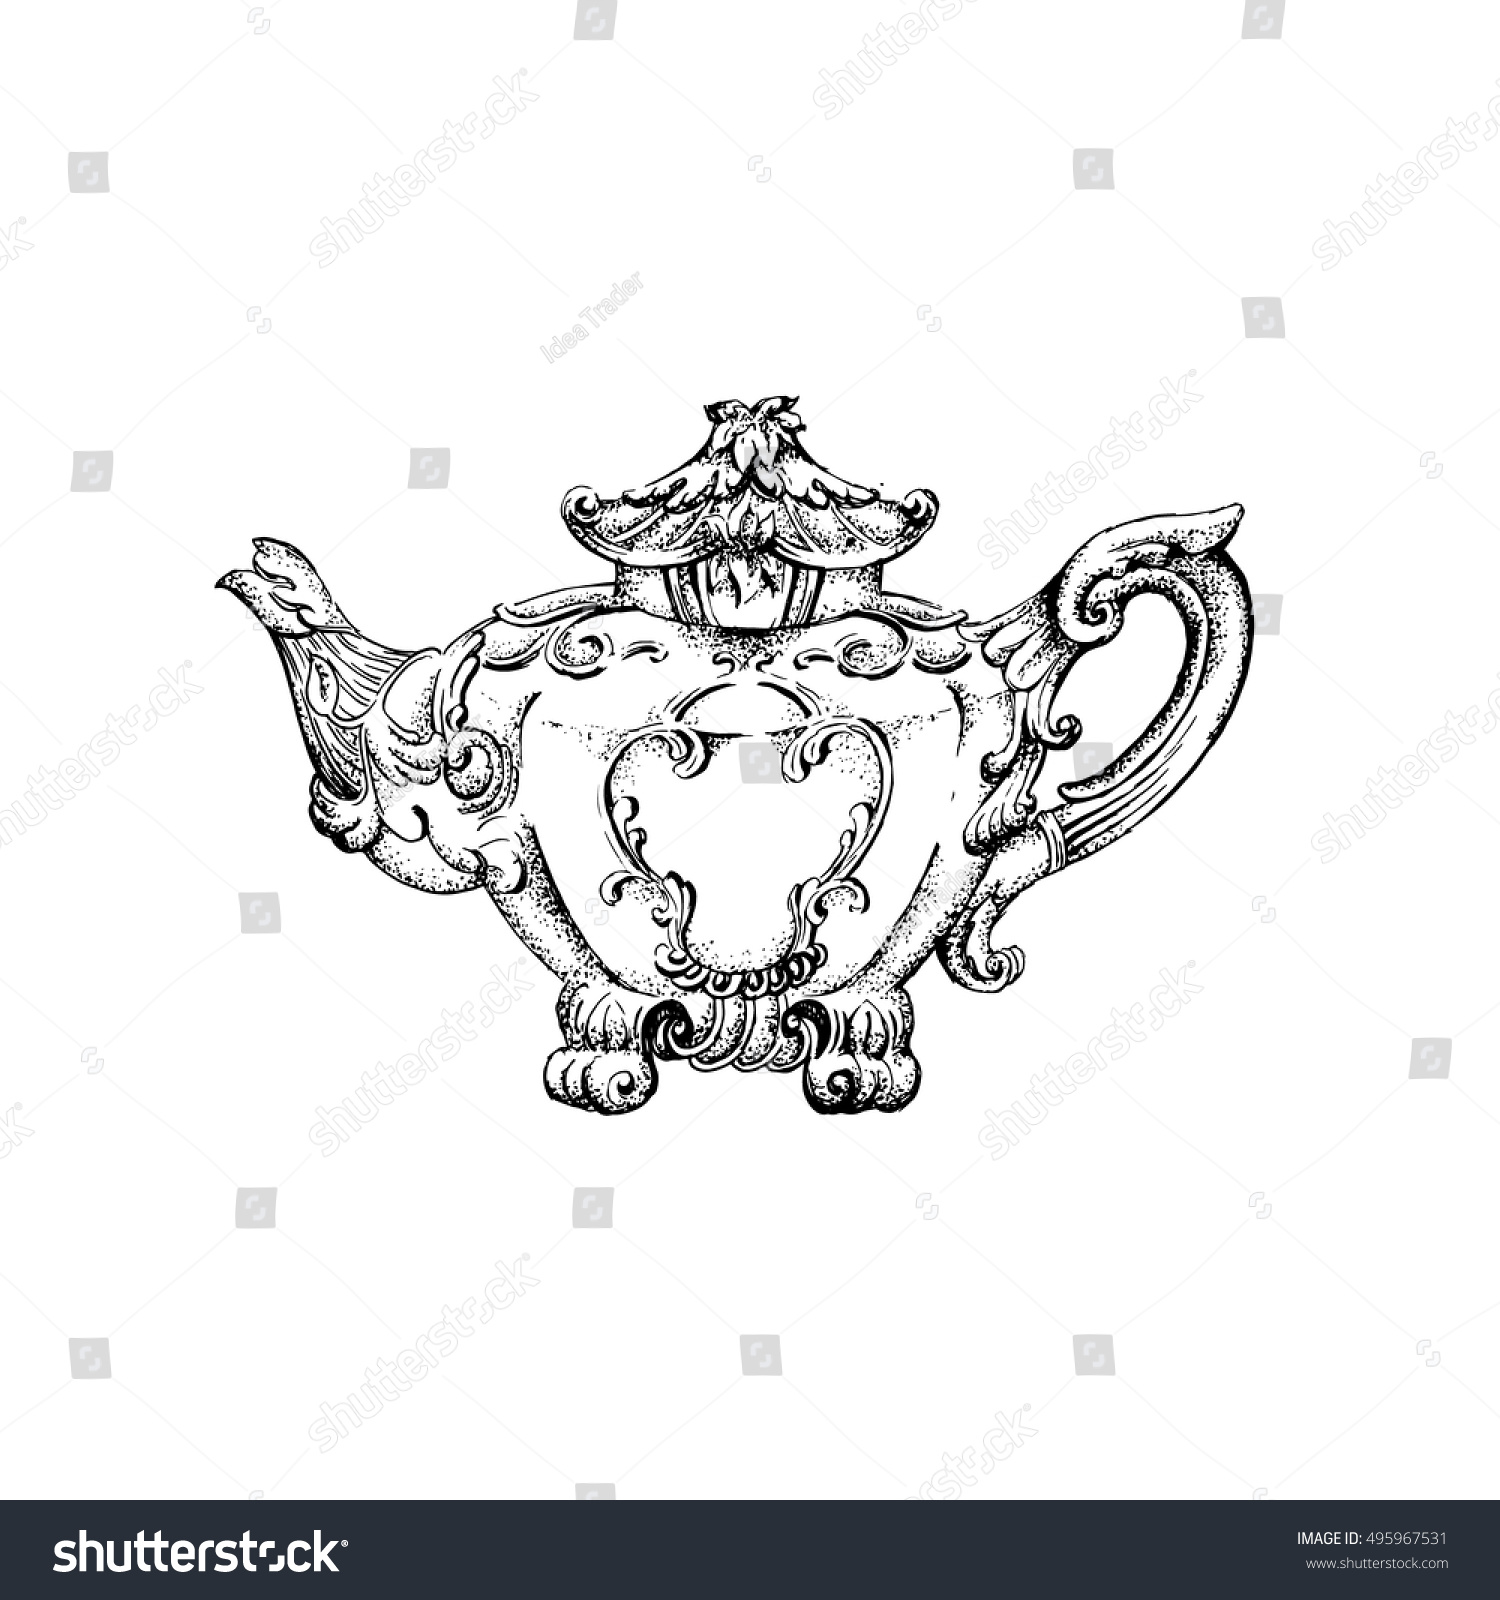 Vector Illustration Of Vintage Teapot With Floral Decor Made In Hand Drawn Sketch Style Template